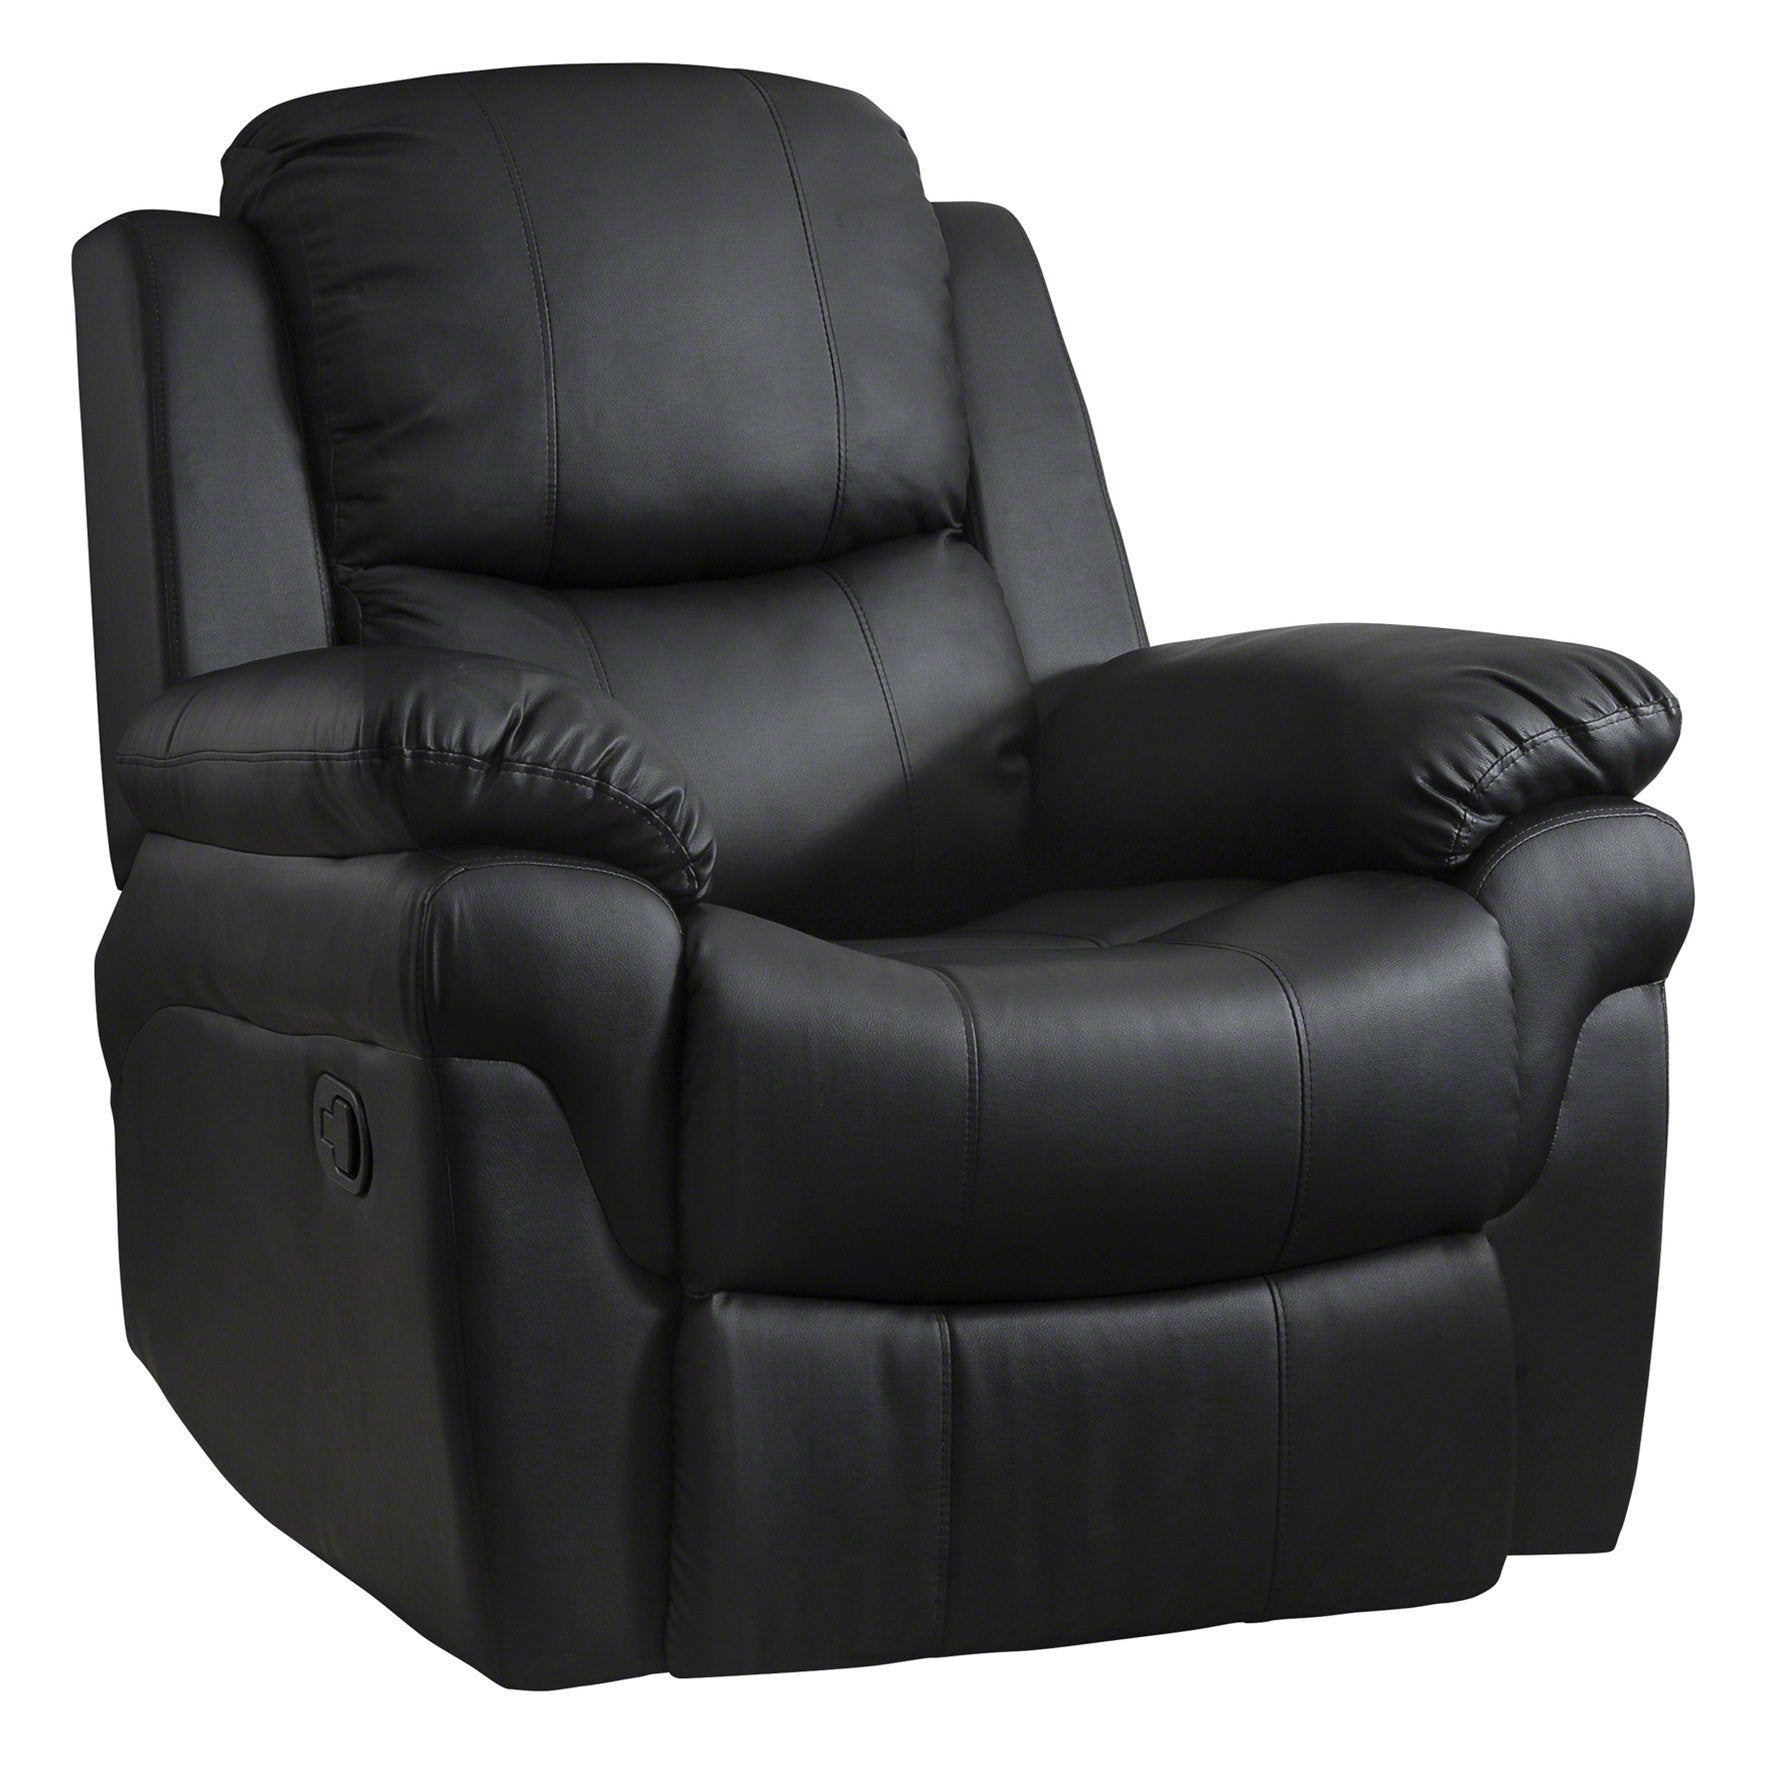 sale inside chair ideas home for sofa leather used design black